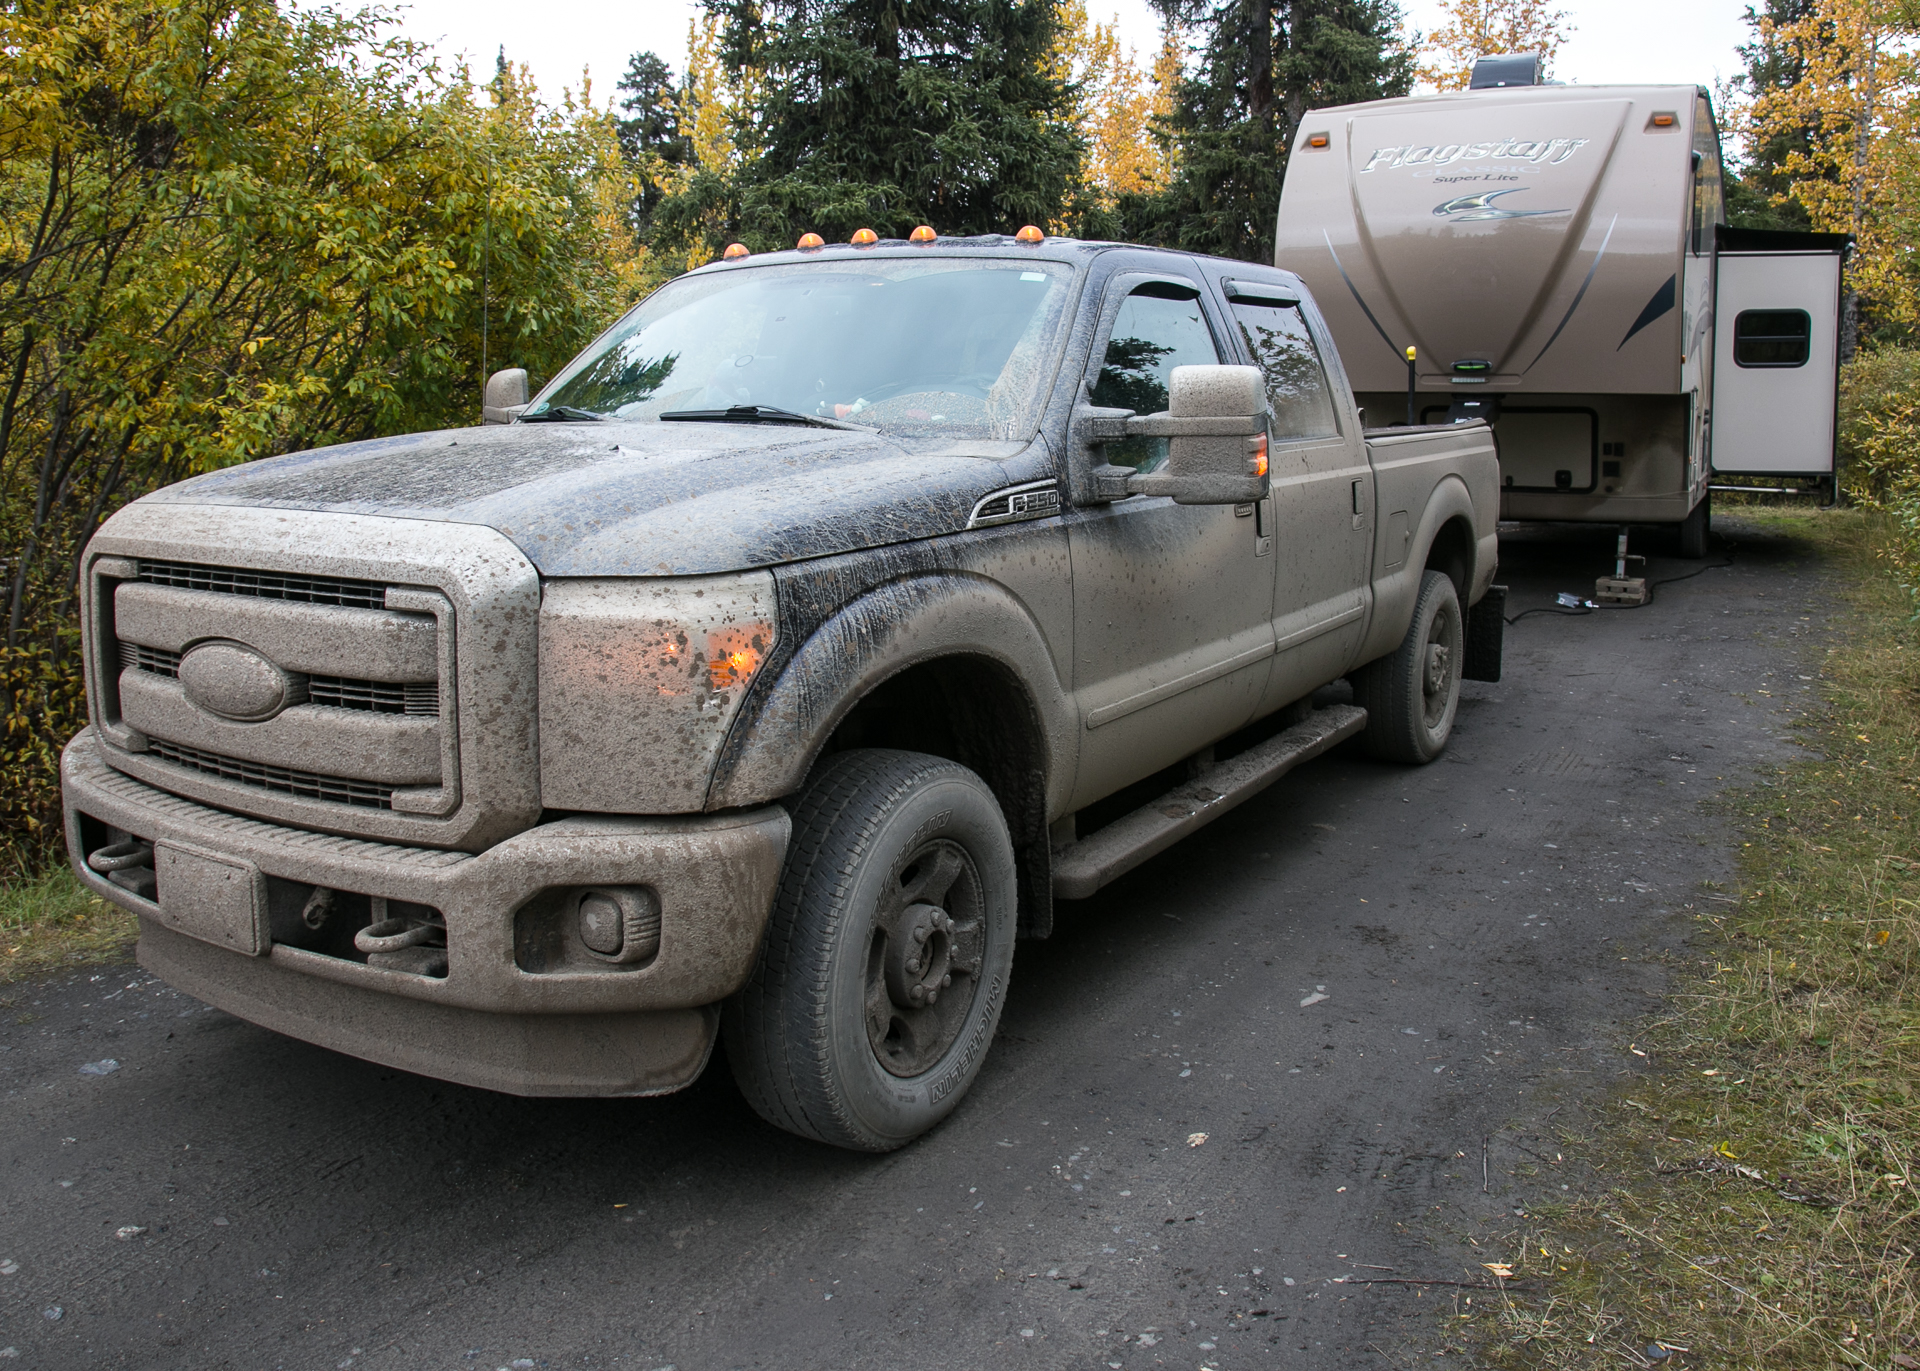 A better picture in the morning light showing how dirty the truck was. You couldn't even see light in the headlights.